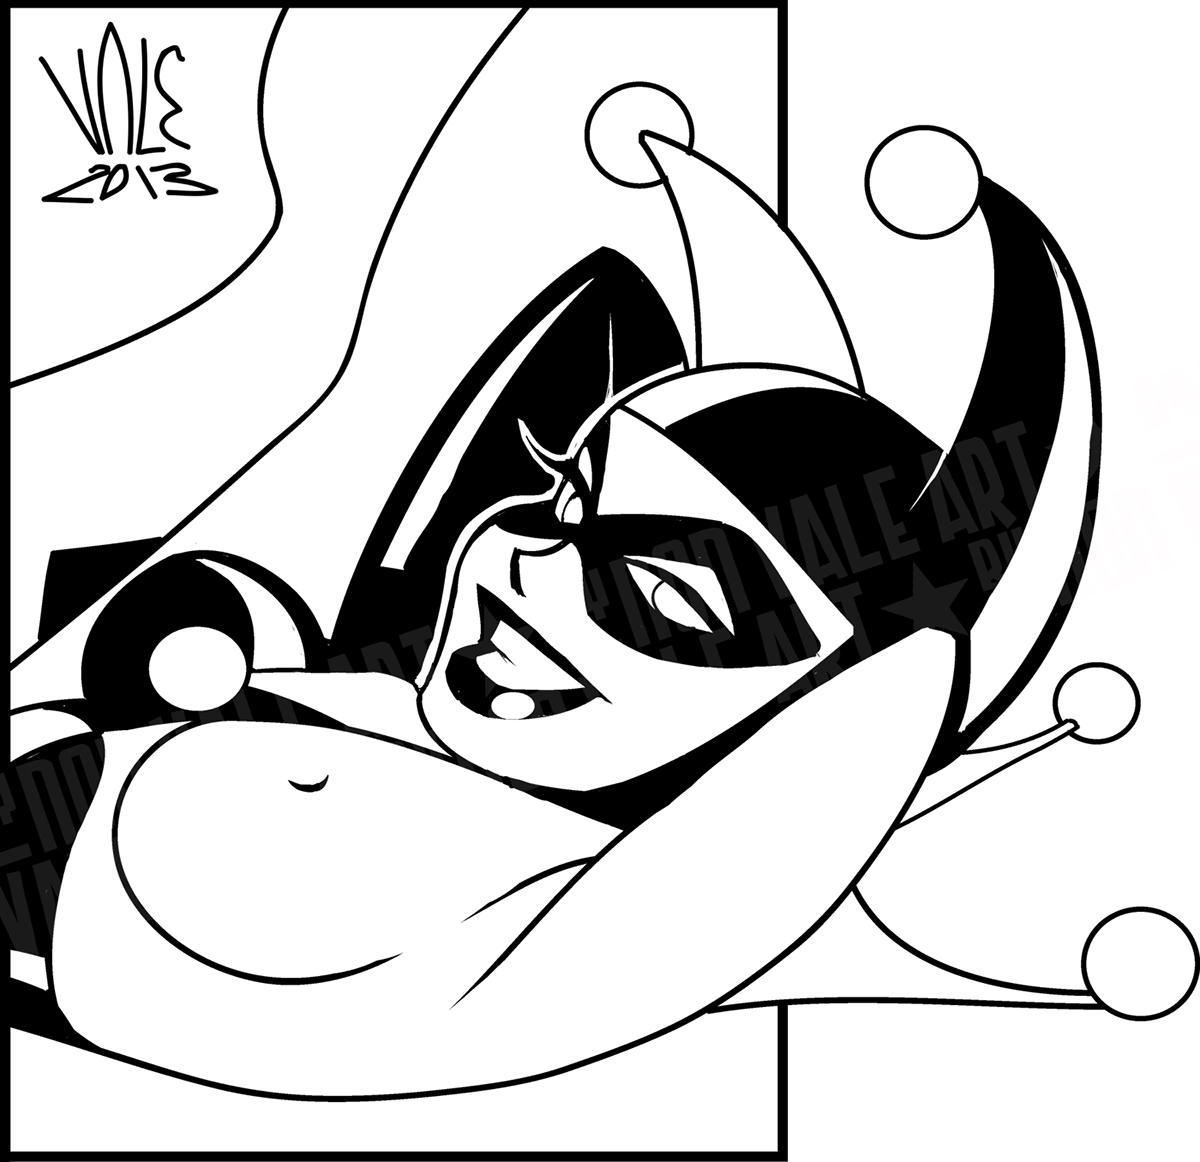 Harley quinn clipart line. In bruce timm s